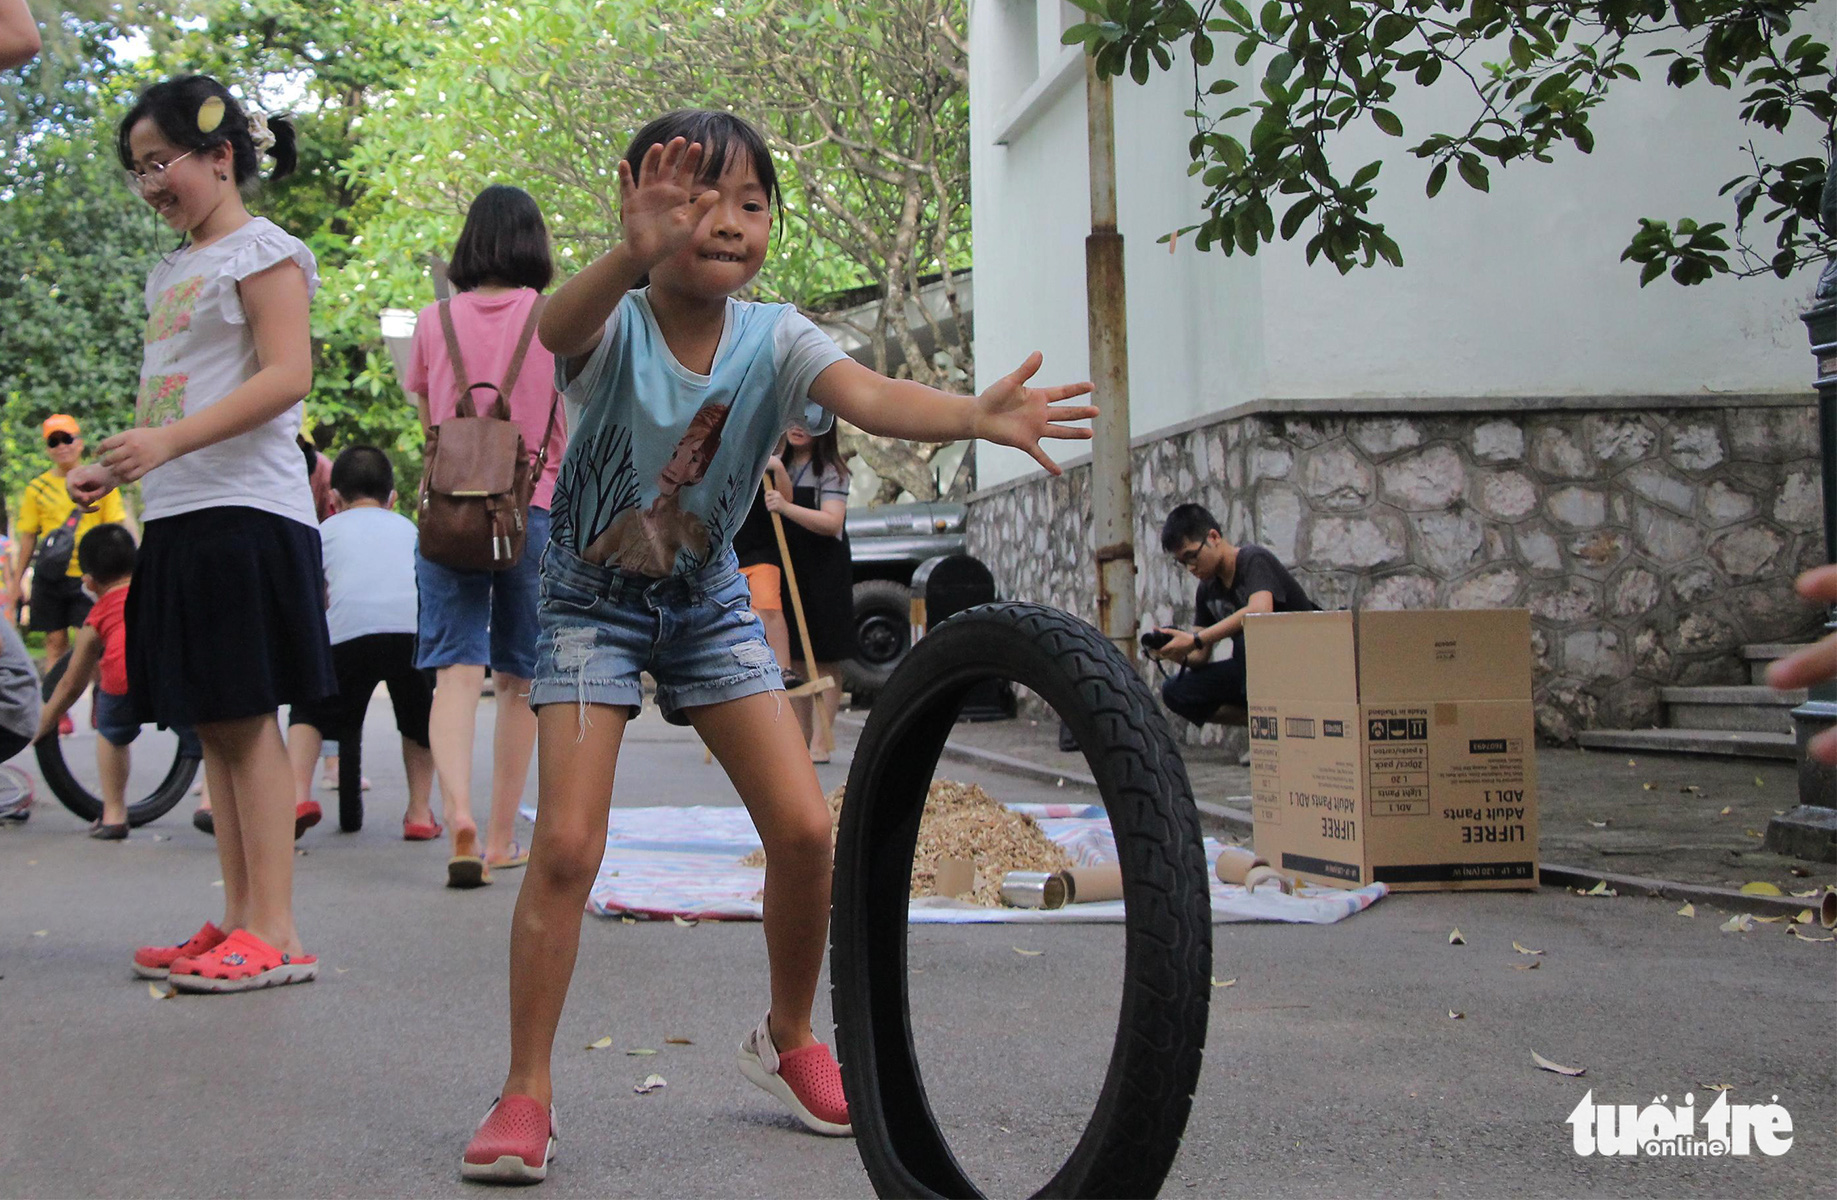 A girl plays with an old tire at the 'Kingdom of Recycled Materials' event in Hanoi, Vietnam, May 31, 2020. Photo: Ha Thanh / Tuoi Tre